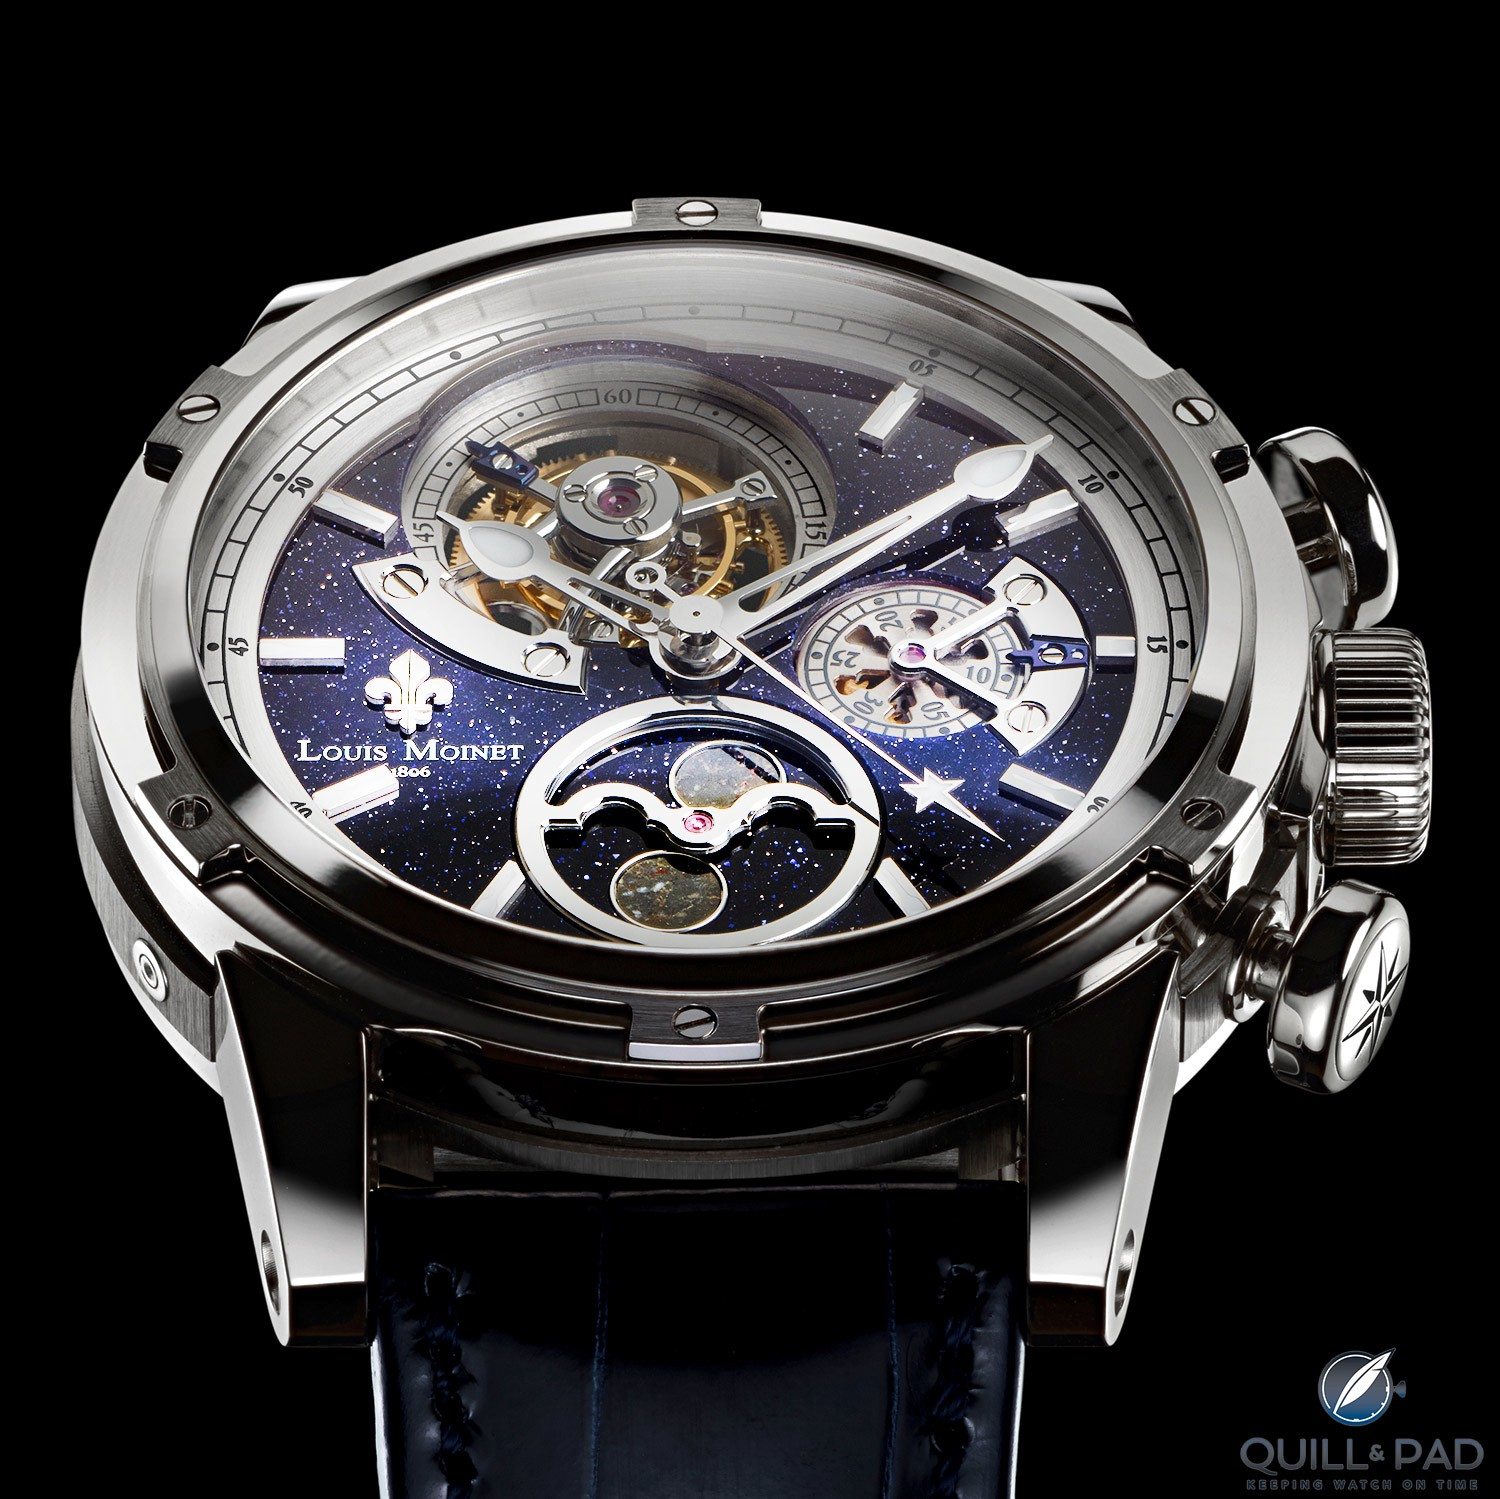 AstroMoon by Louis Moinet with a beautiful and complicated aventurine dial